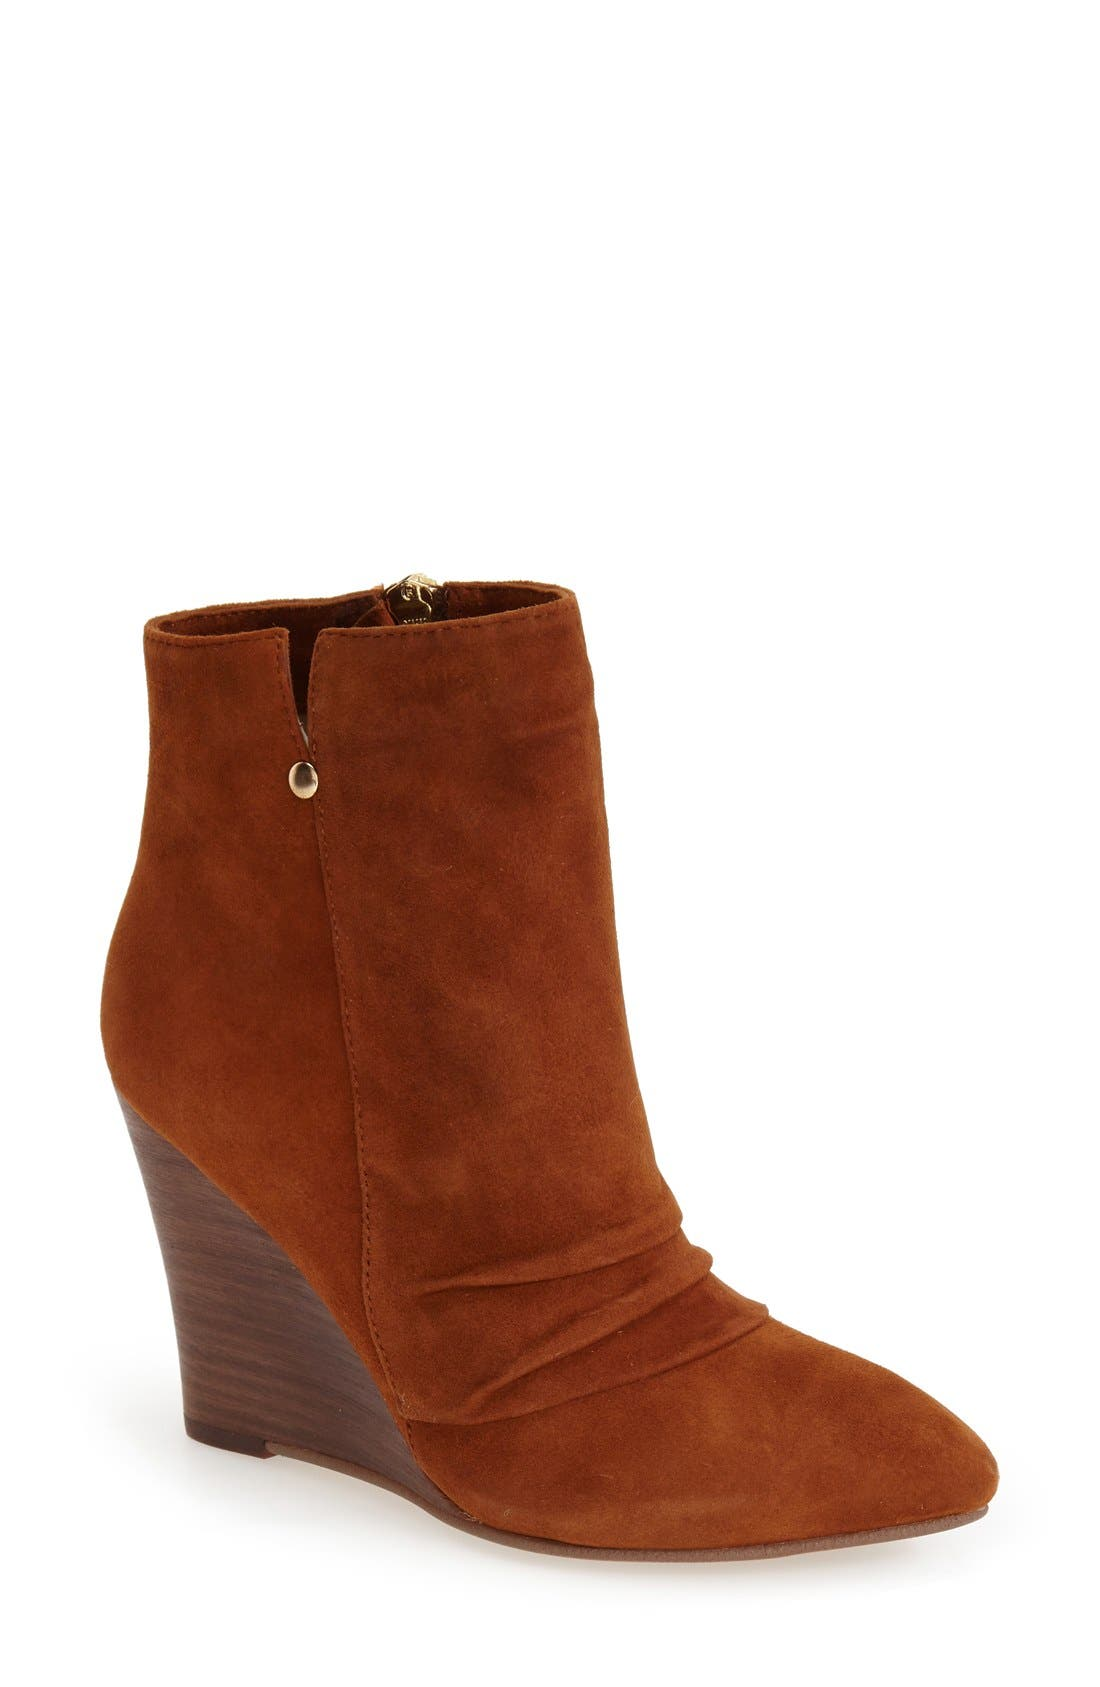 Alternate Image 1 Selected - Kristin Cavallari 'Candyce' Wedge Bootie (Women)